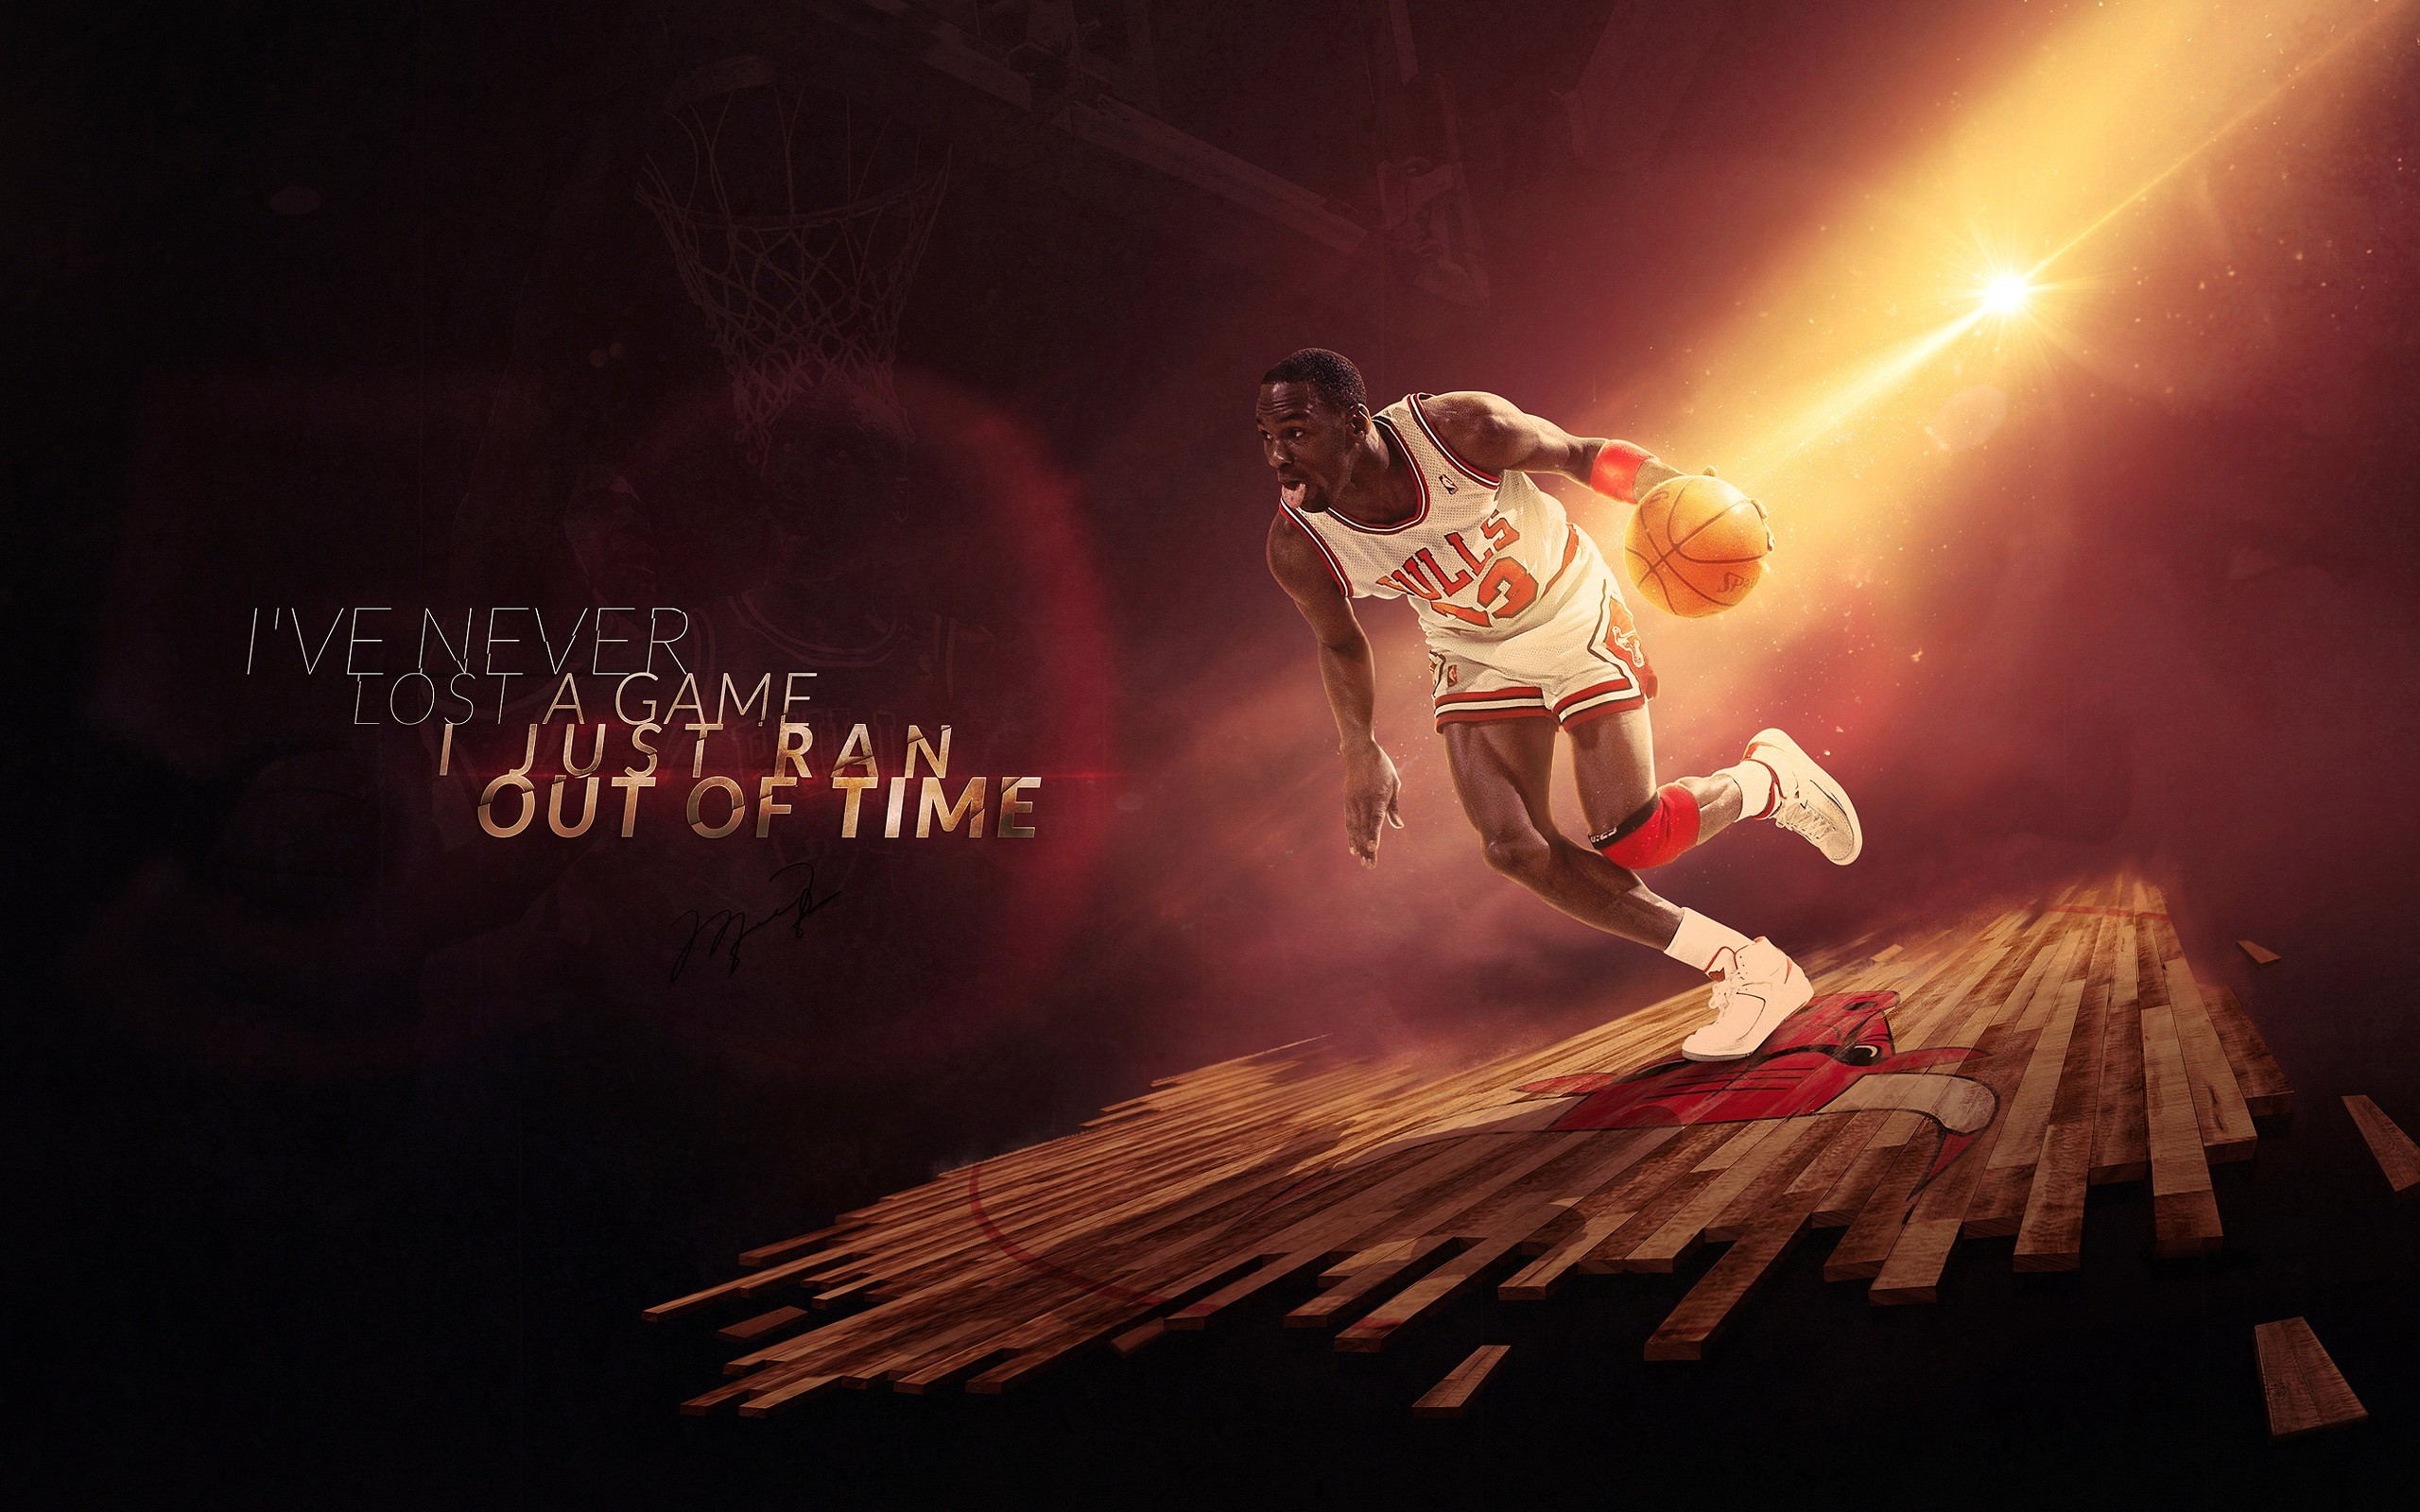 Res: 2560x1600, michael jordan chicago bulls background hd background wallpapers free  amazing cool smart phone 4k high definition